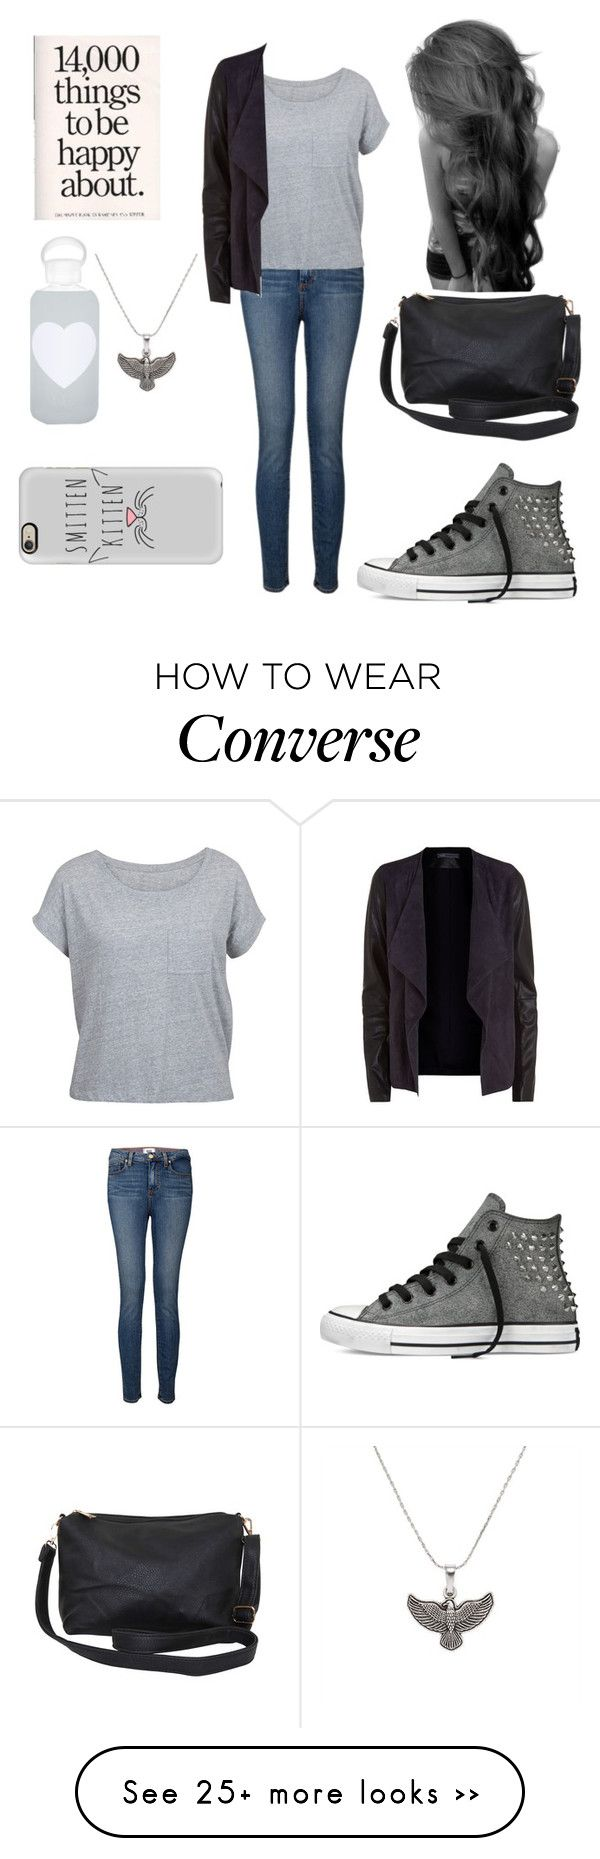 """""""Untitled #141"""" by pinkkittycat on Polyvore featuring Alex and Ani, Paige Denim, Vince, Converse, Humble Chic, bkr and Casetify"""